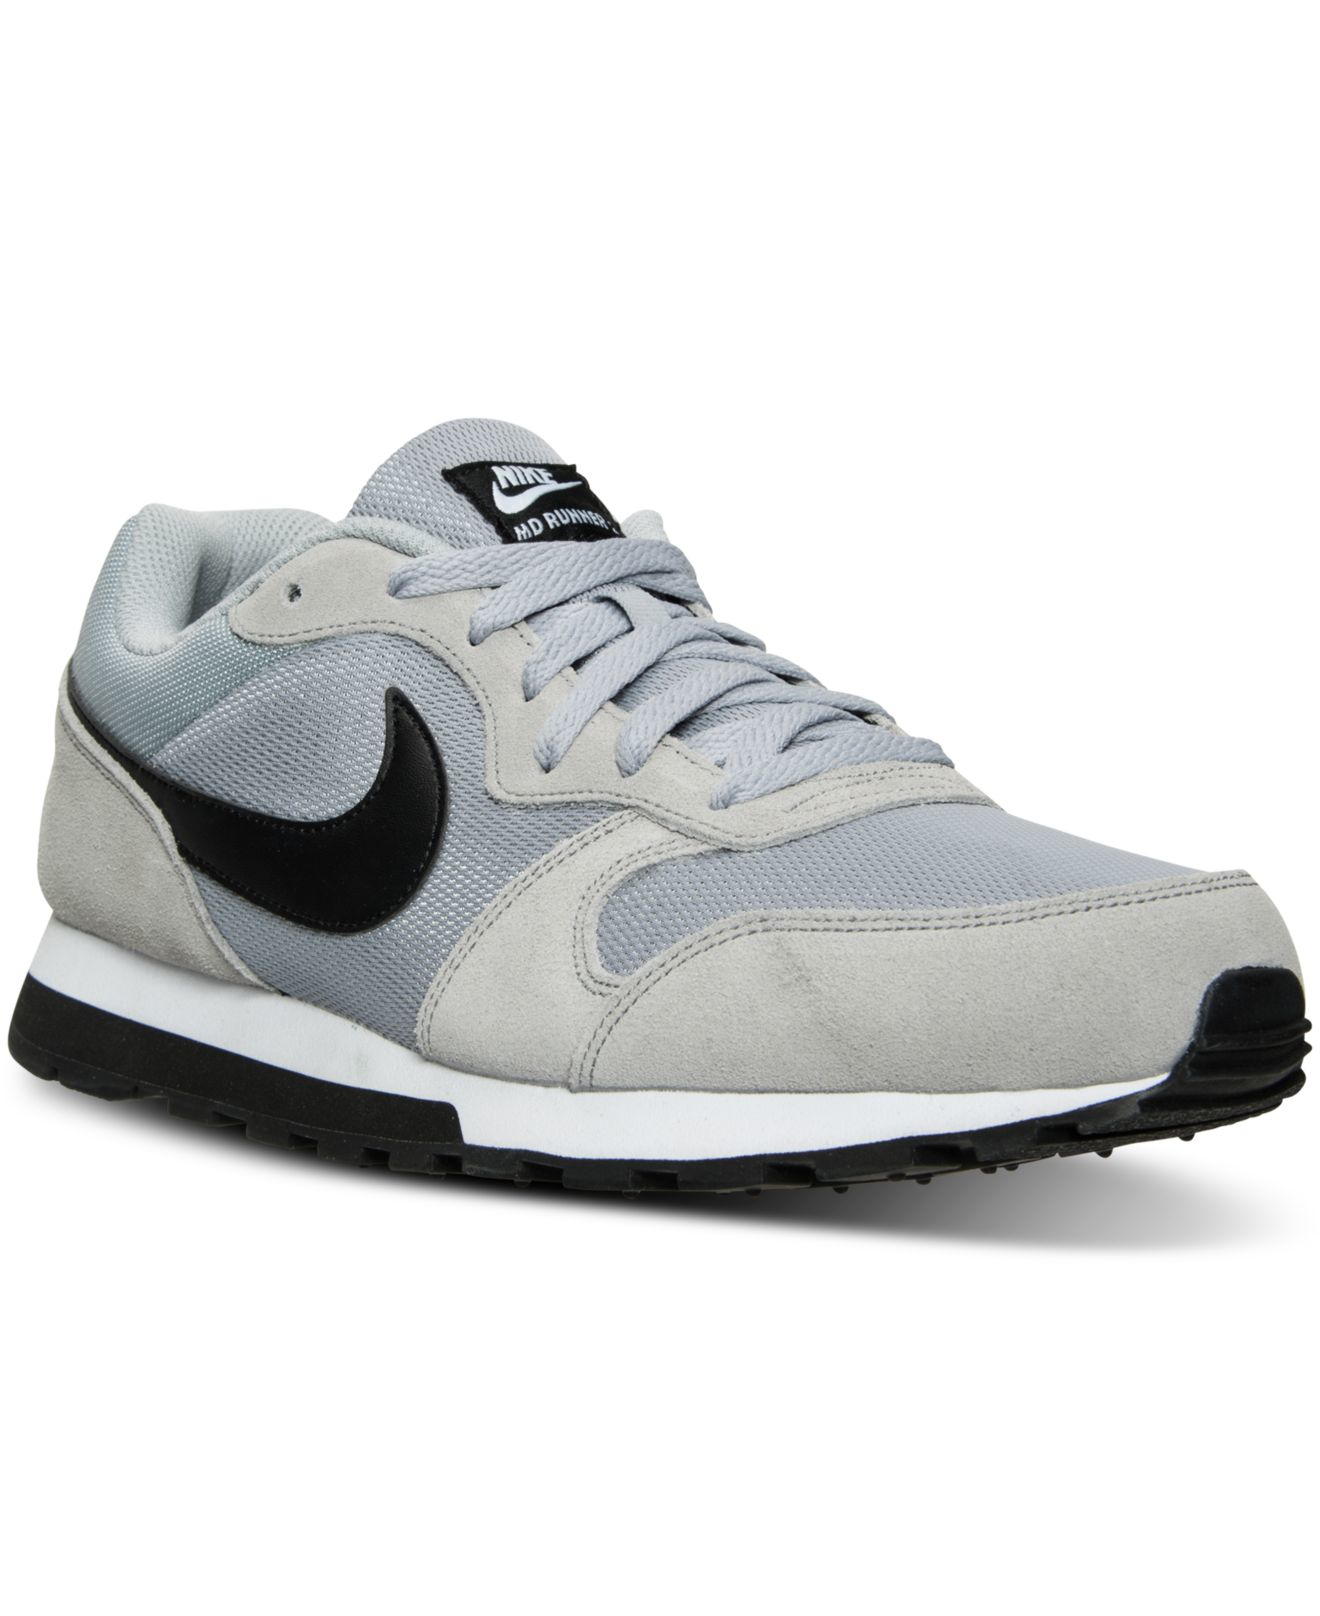 Lyst - Nike Men s Md Runner 2 Casual Sneakers From Finish Line in ... 0db8f82fed98